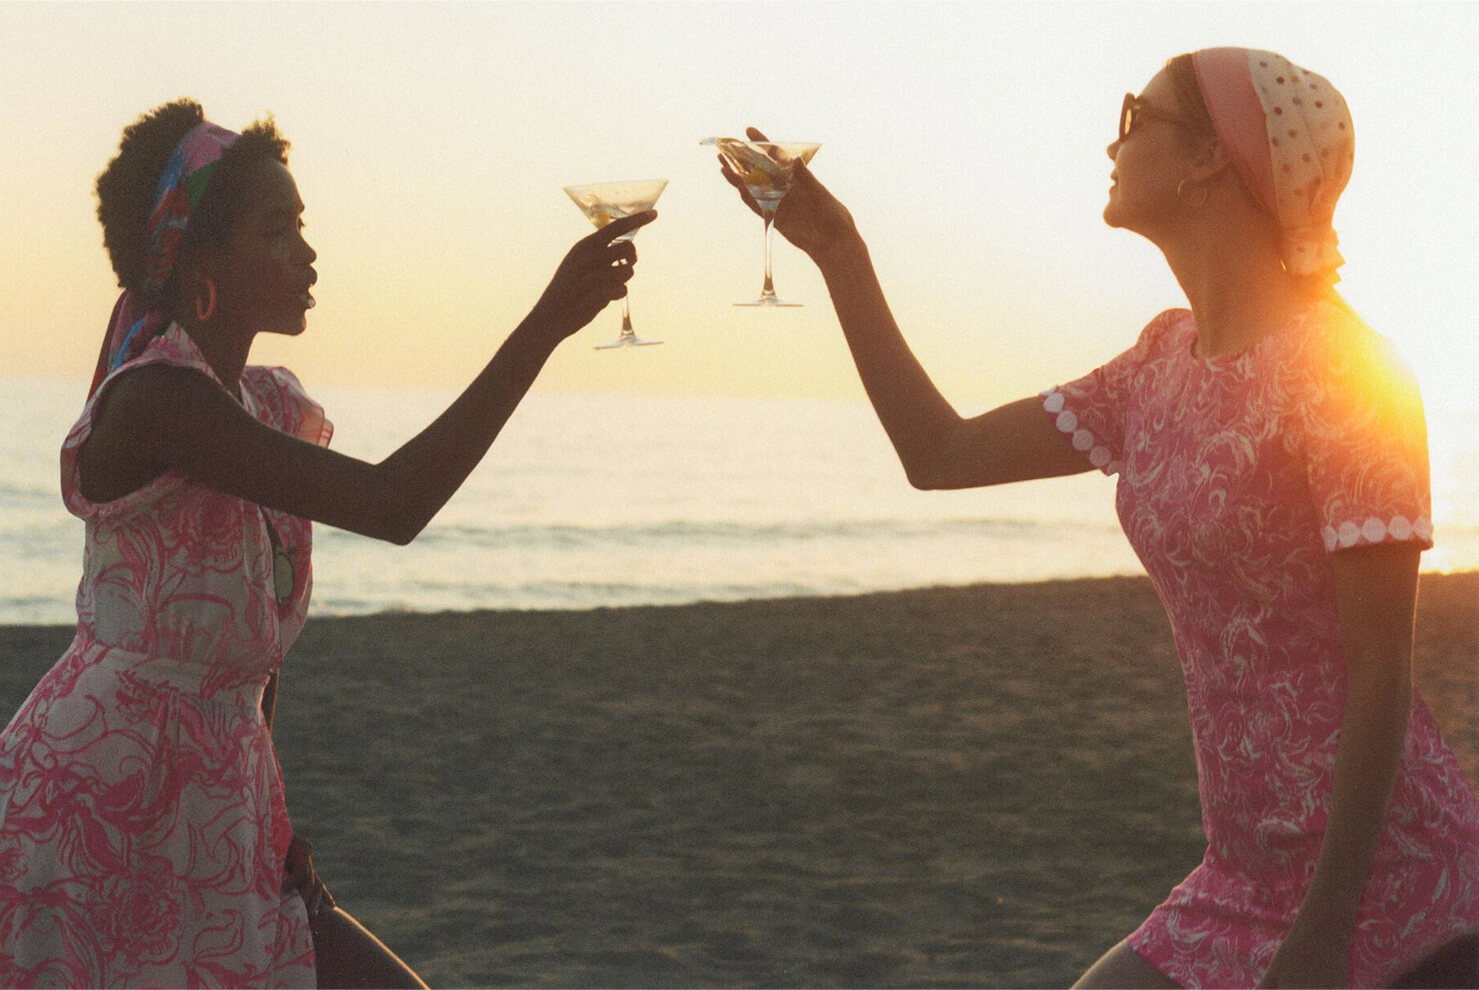 Models on the beach drinking martinis